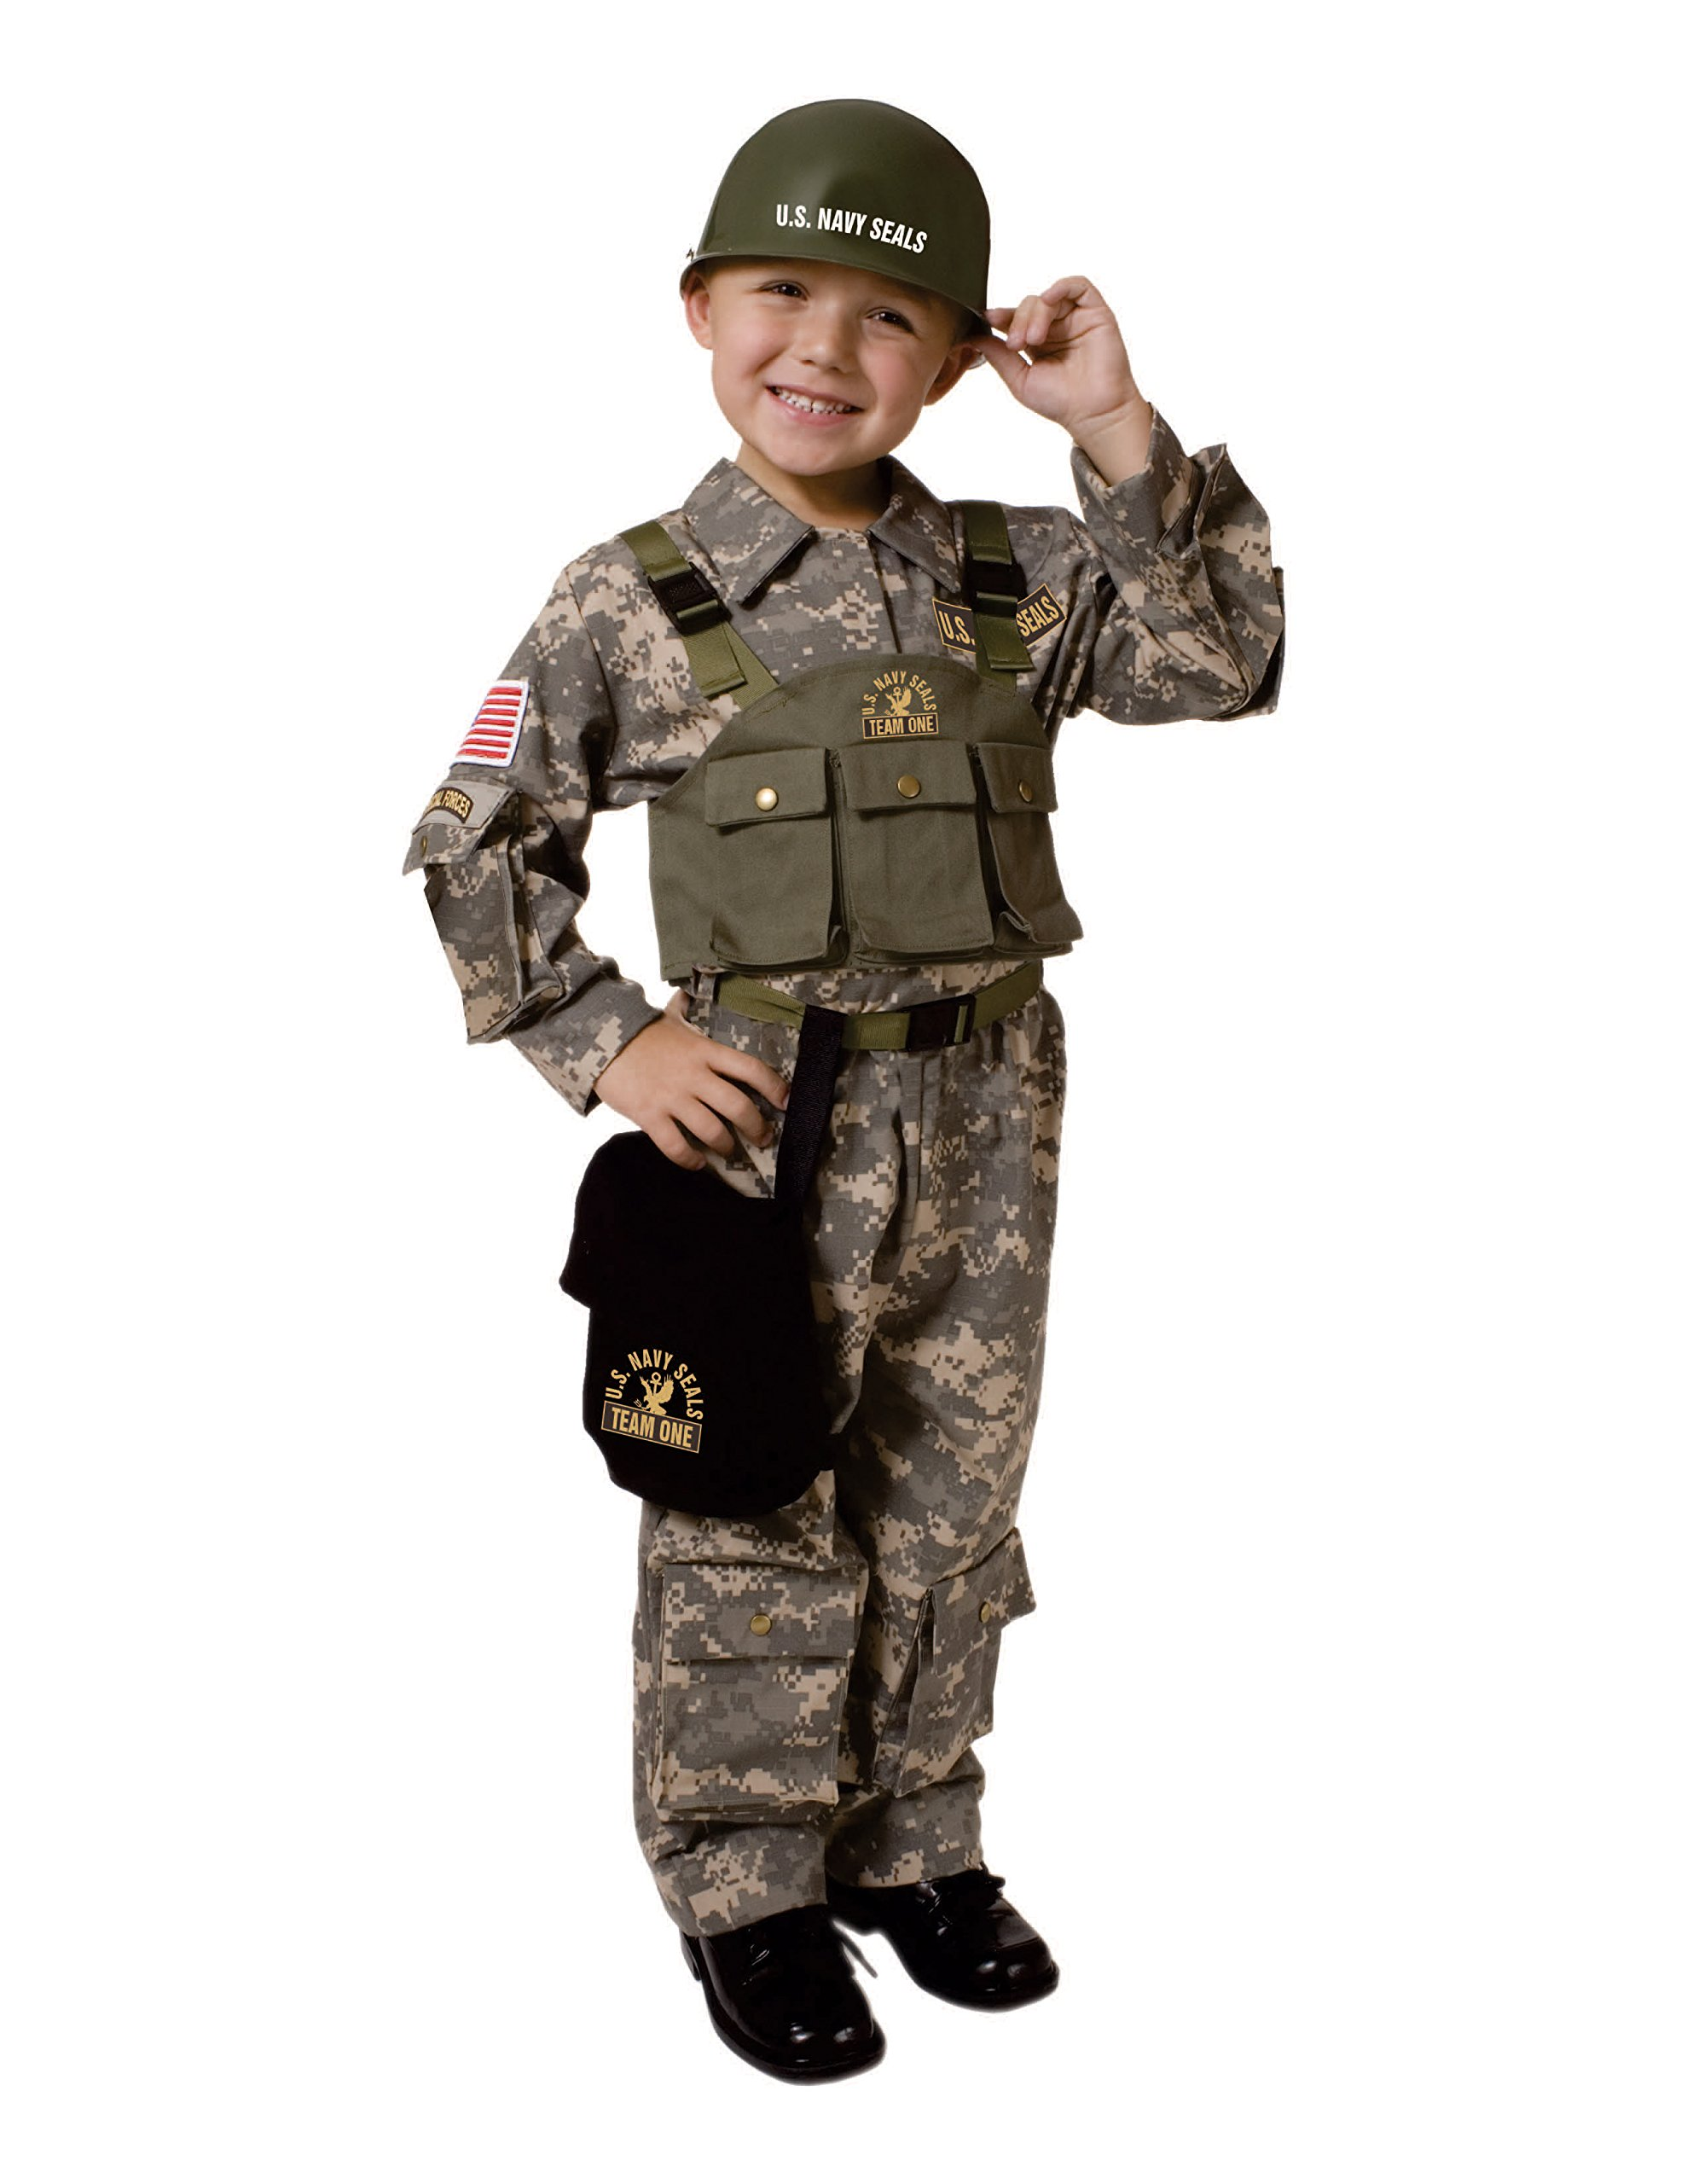 Navy SEAL - Army Special Forces Child Costume- Medium (8-10) by Dress Up America